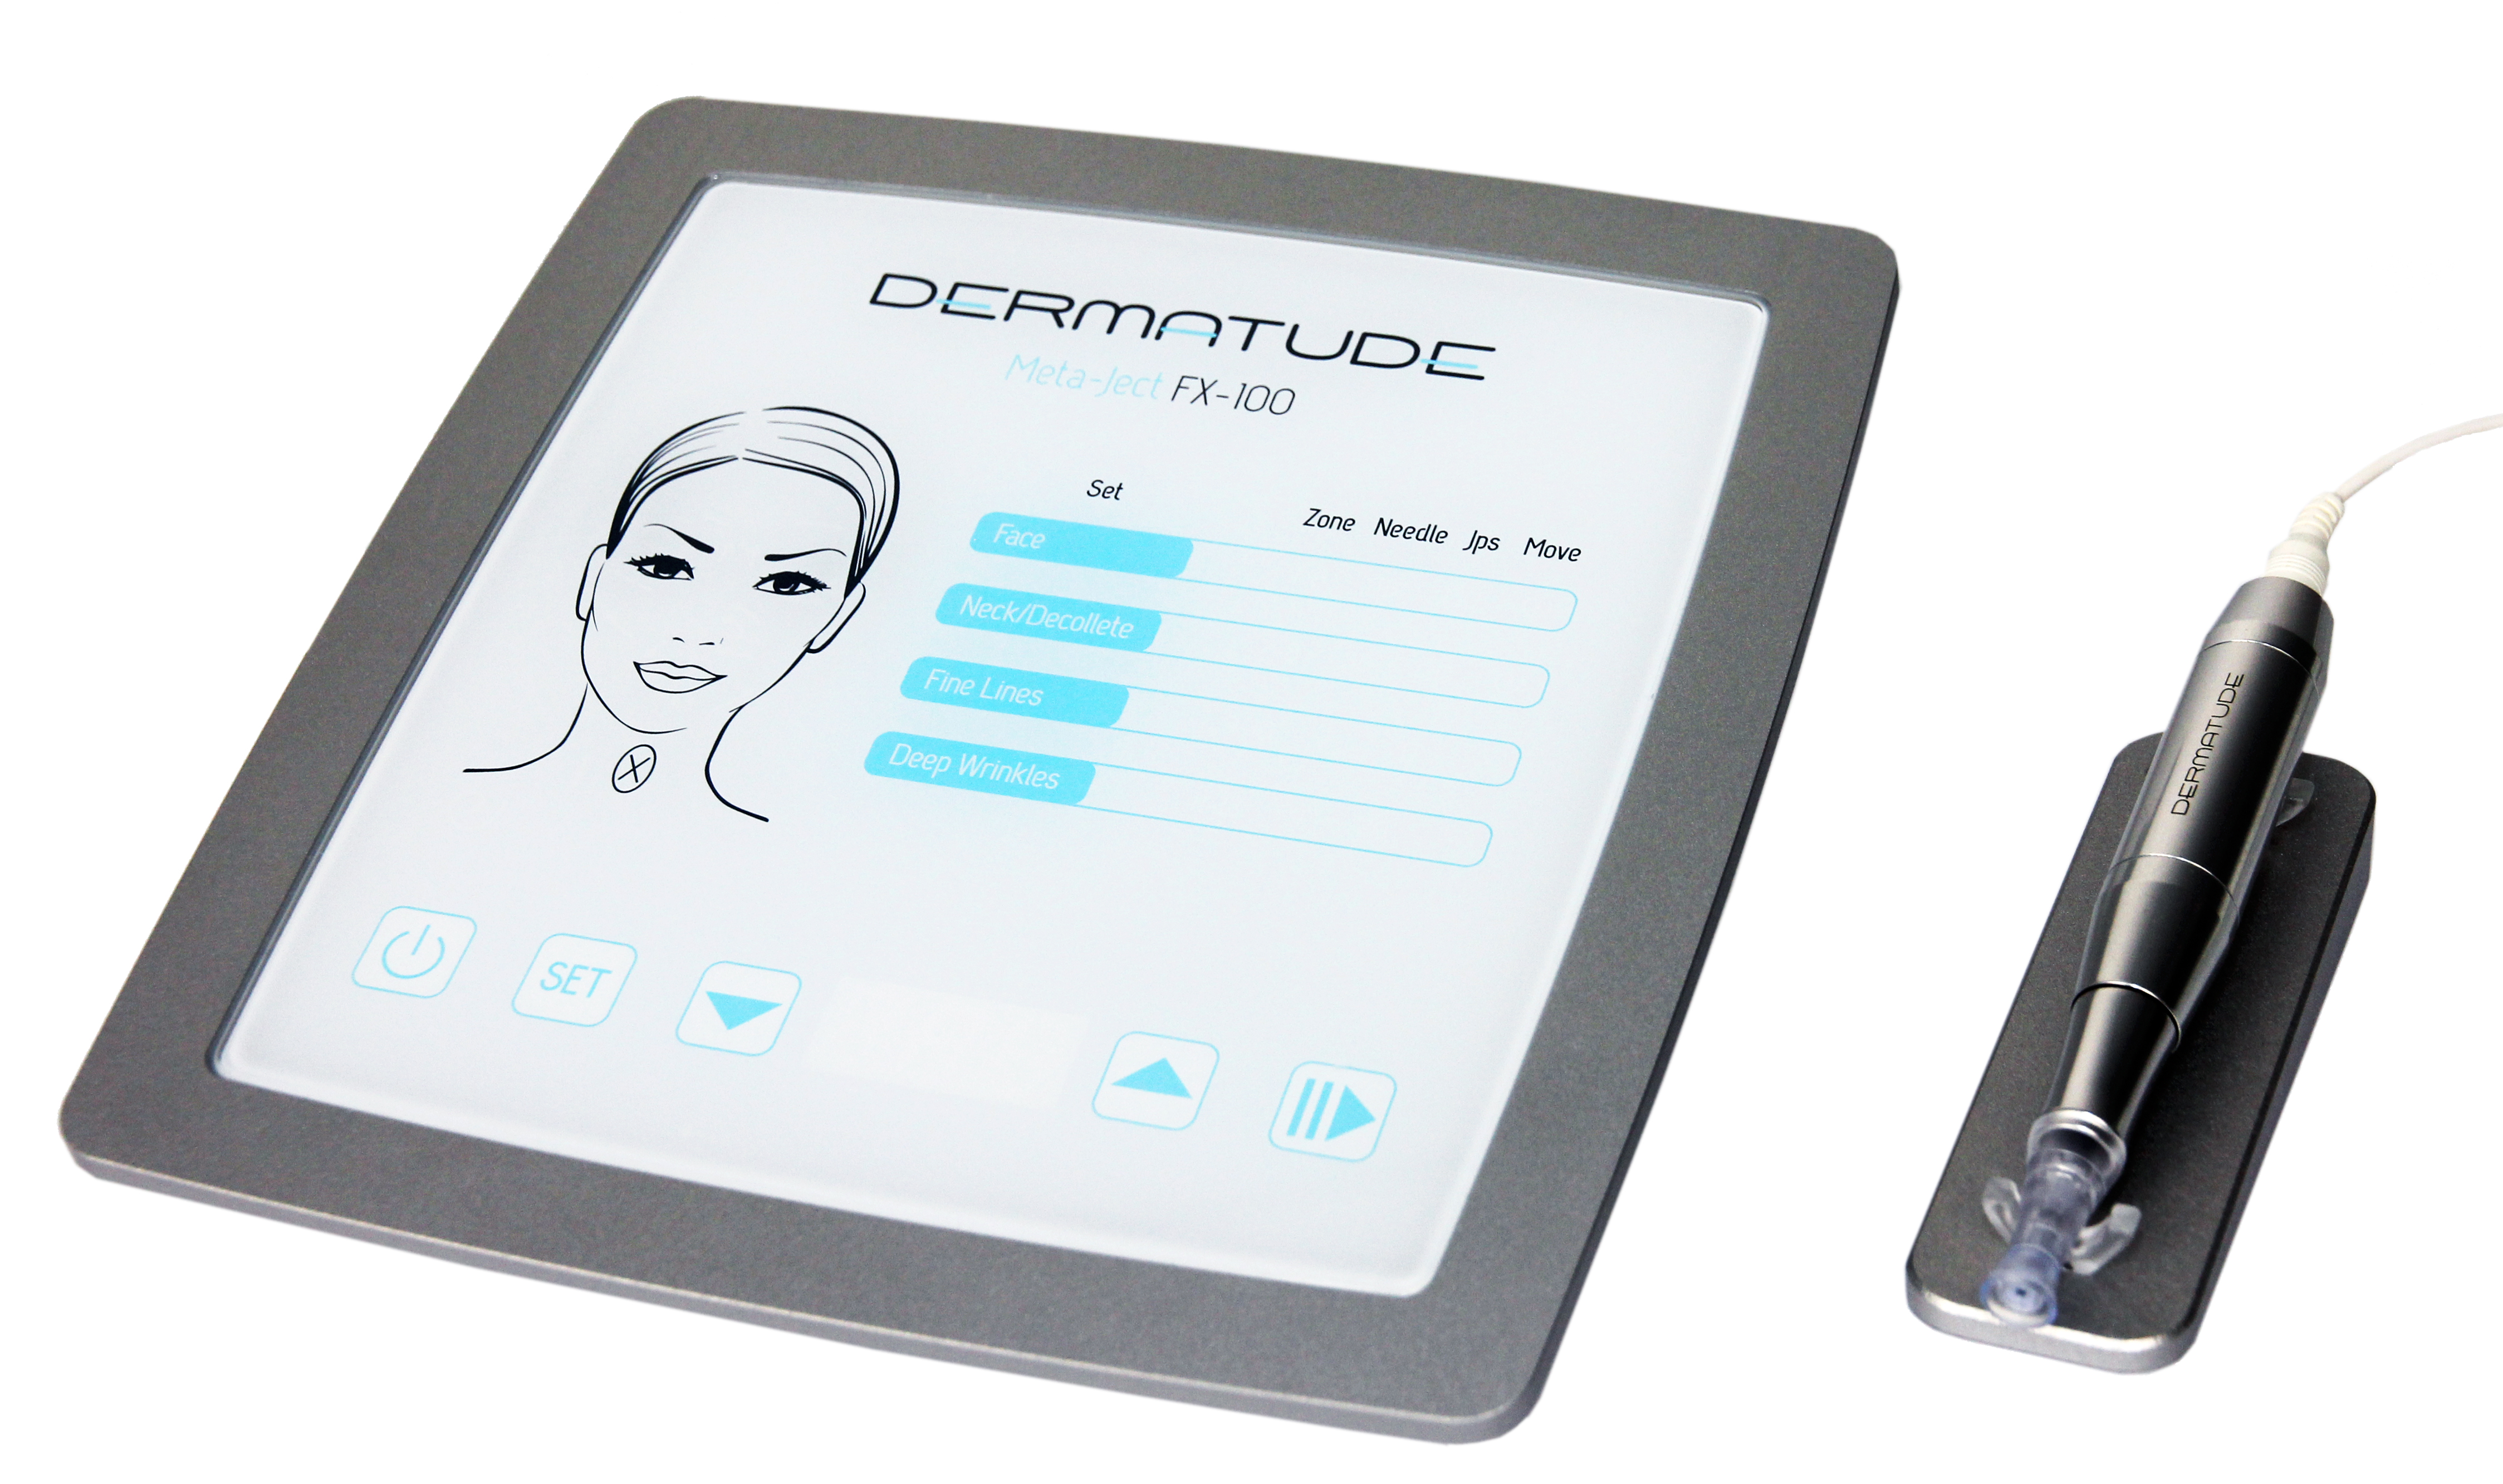 The Impact of Dermatude on the Aesthetics Industry